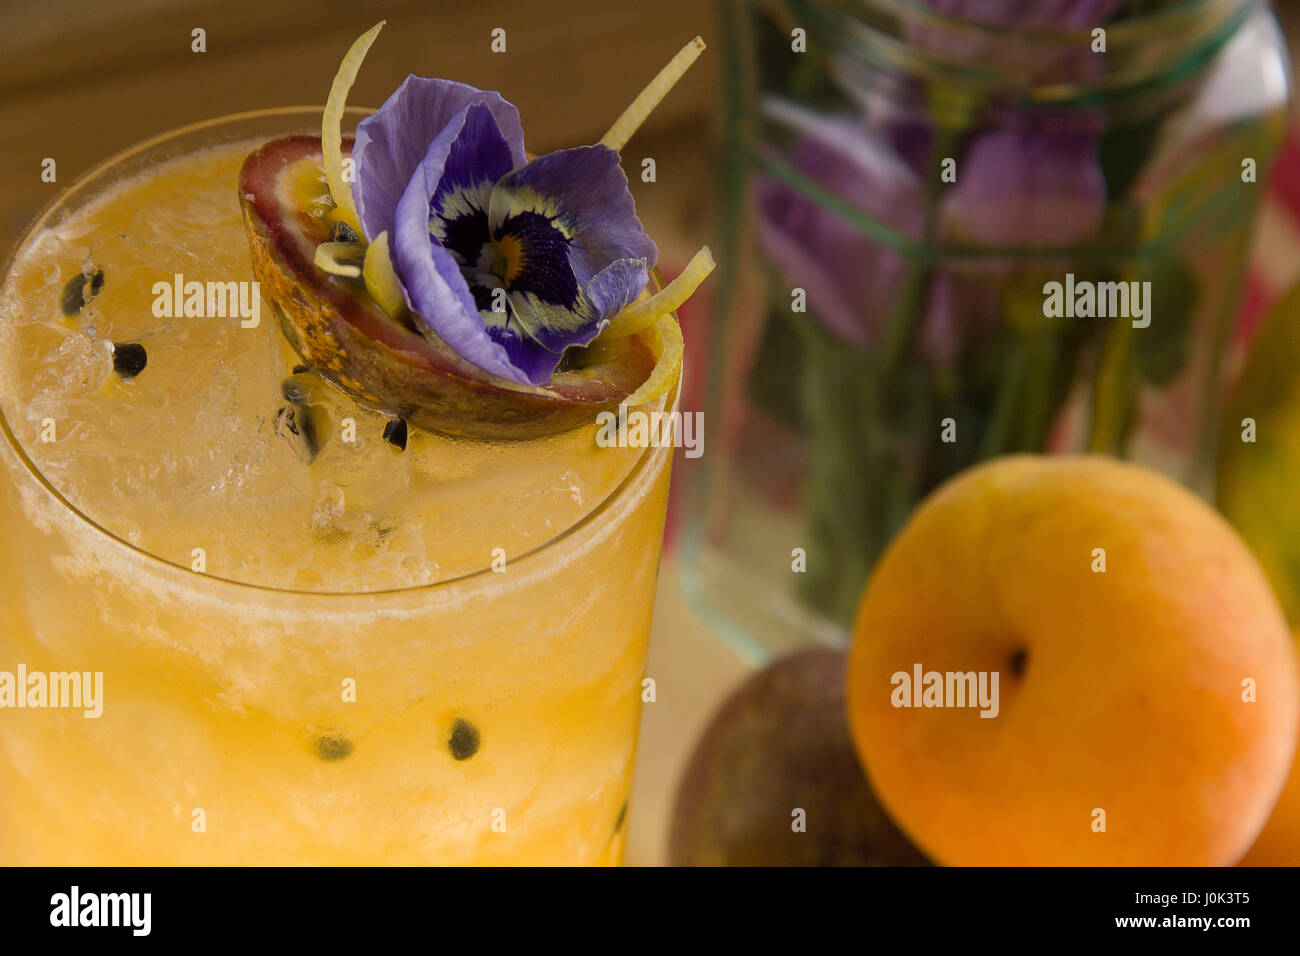 Gin shaken with apricot brandy, apricot conserve, and squeezed passion fruit - Stock Image